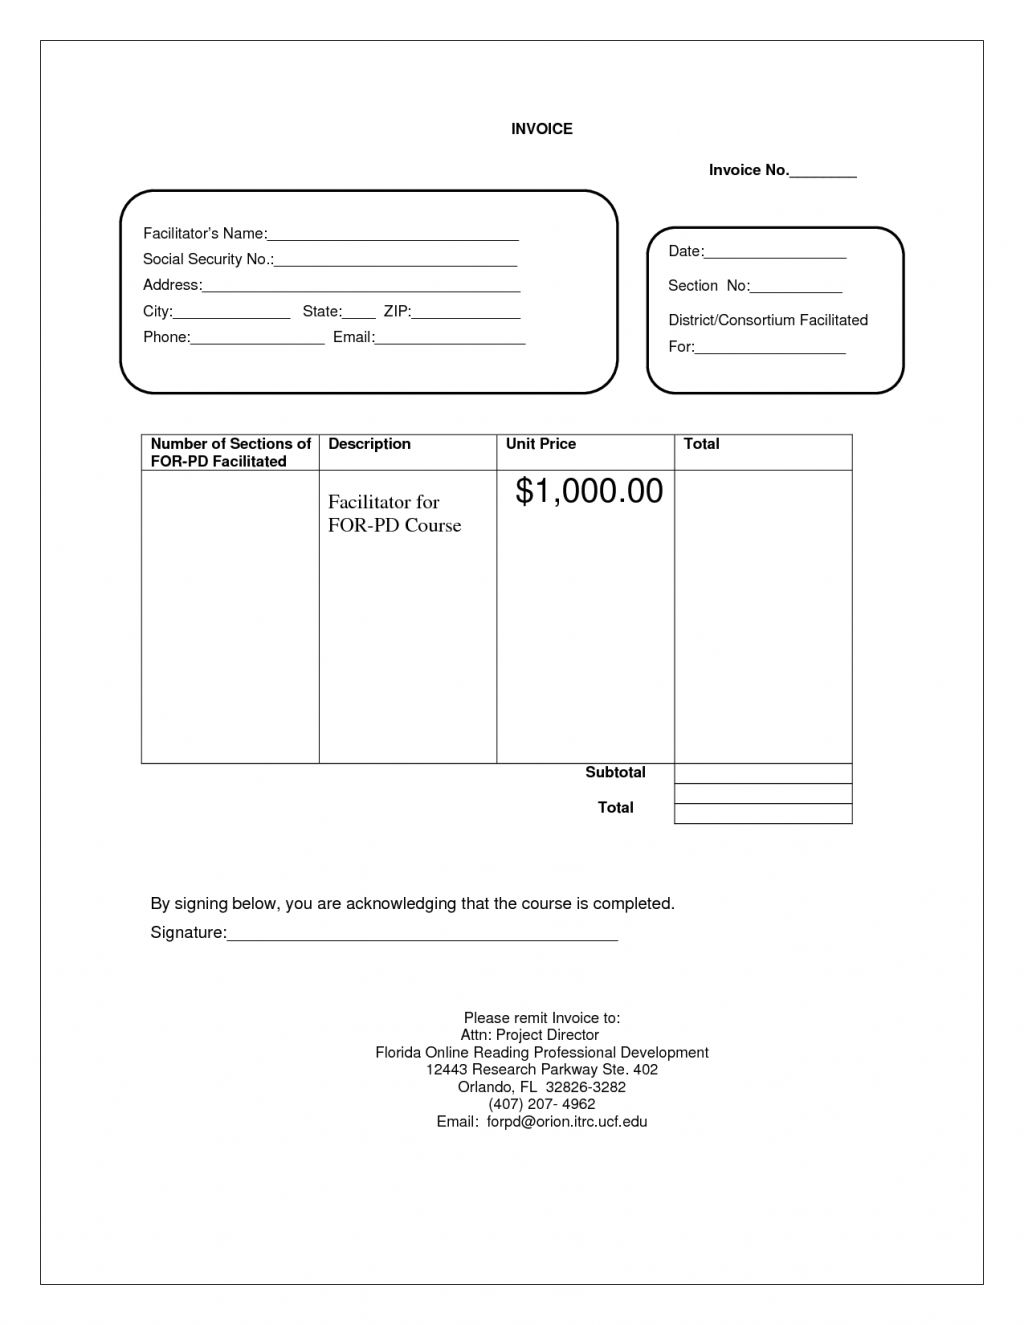 Invoice Template Excel Invoice Template Google Docs Google Spreadsheet Spreadsheet Templates for Busines Google Spreadsheet Spreadsheet Templates for Busines Invoice Template Free